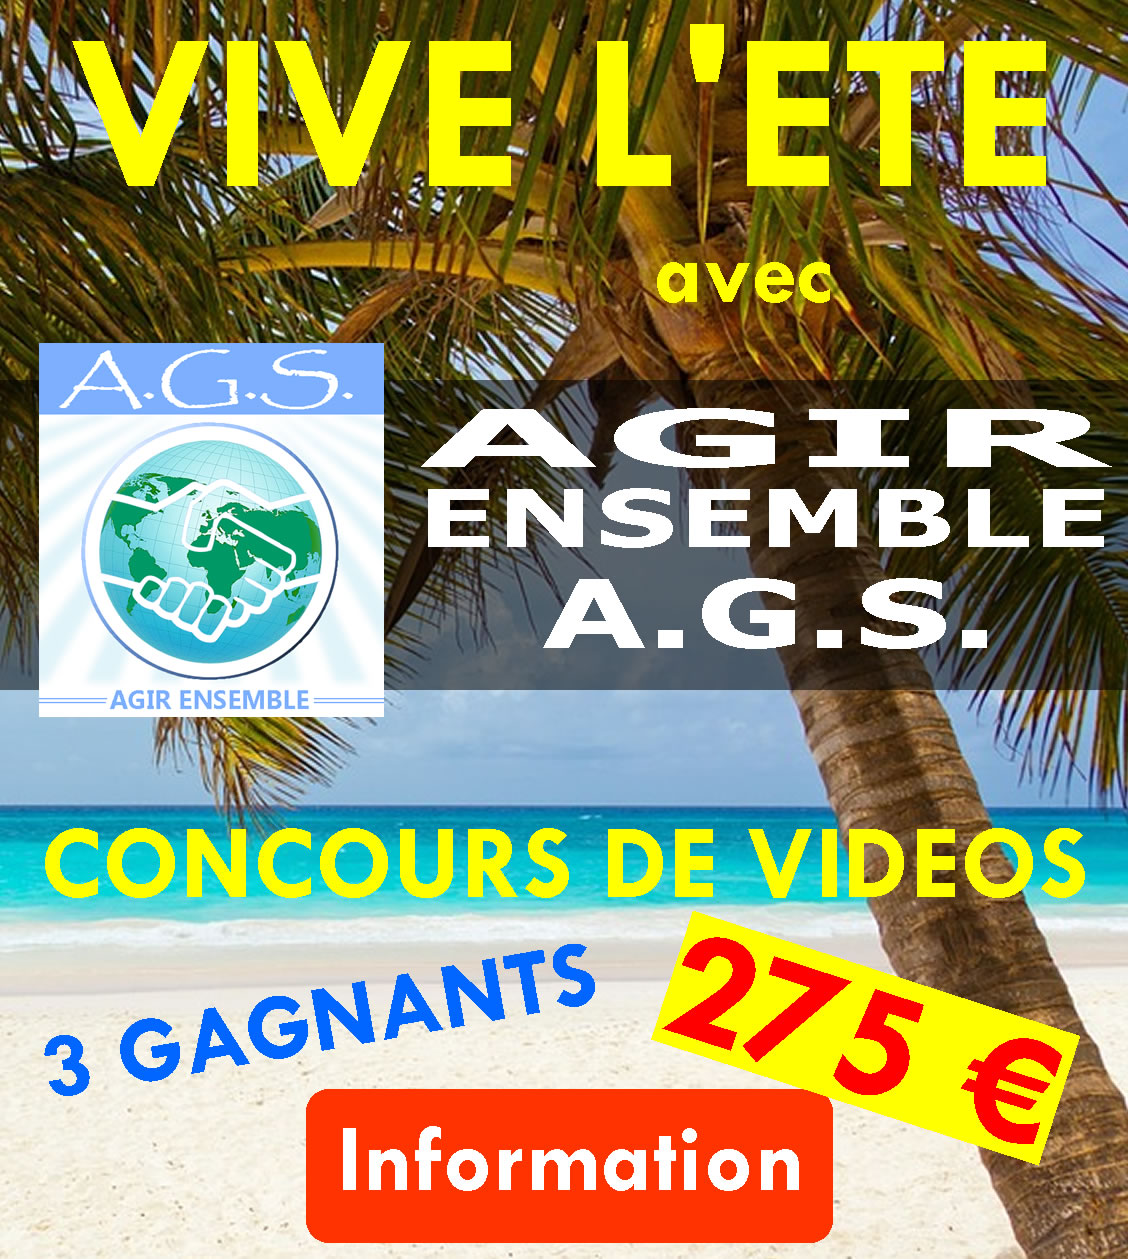 CONCOURS VIDEOS, MowXml communauté de webmasters, webdesigners, création de sites web, creation de sites internet, création sites web, Création sites web, création de site web, creation de site web, création site web, Création site web, mowxml, mowxml.org